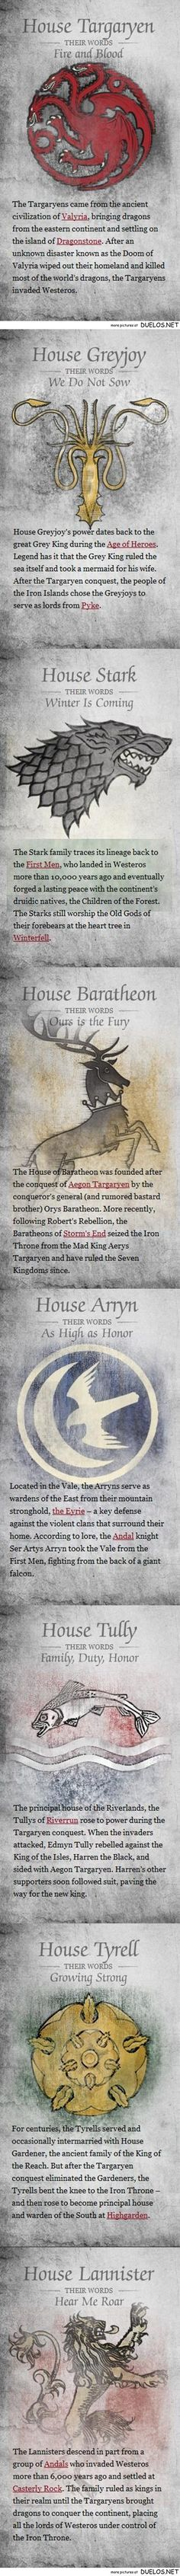 History of houses of Game of Thrones